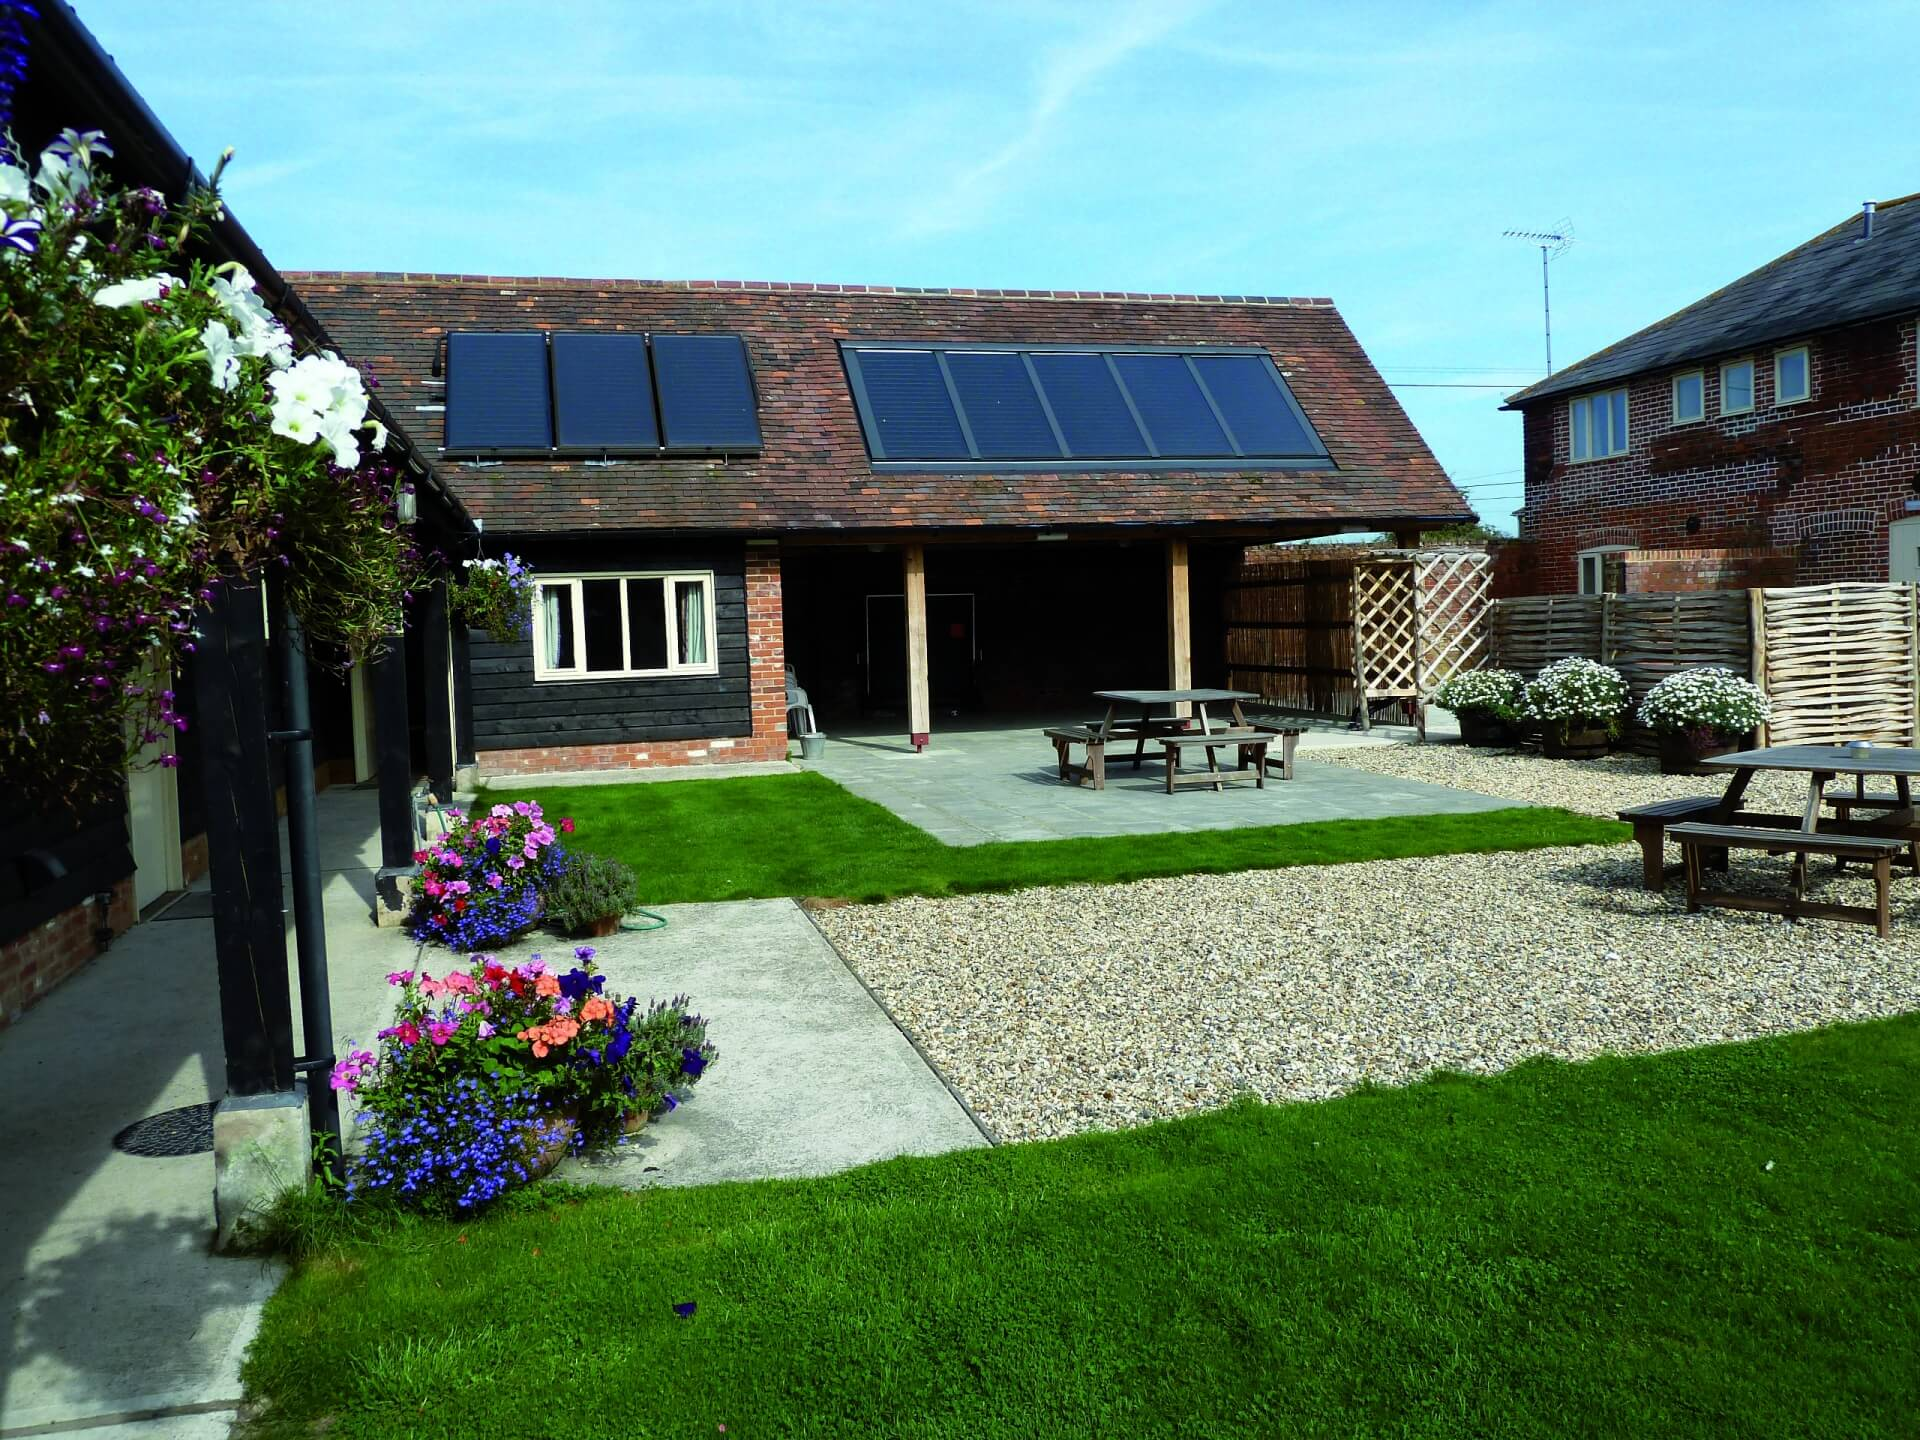 Palace Farm gets Gold for Green Tourisum